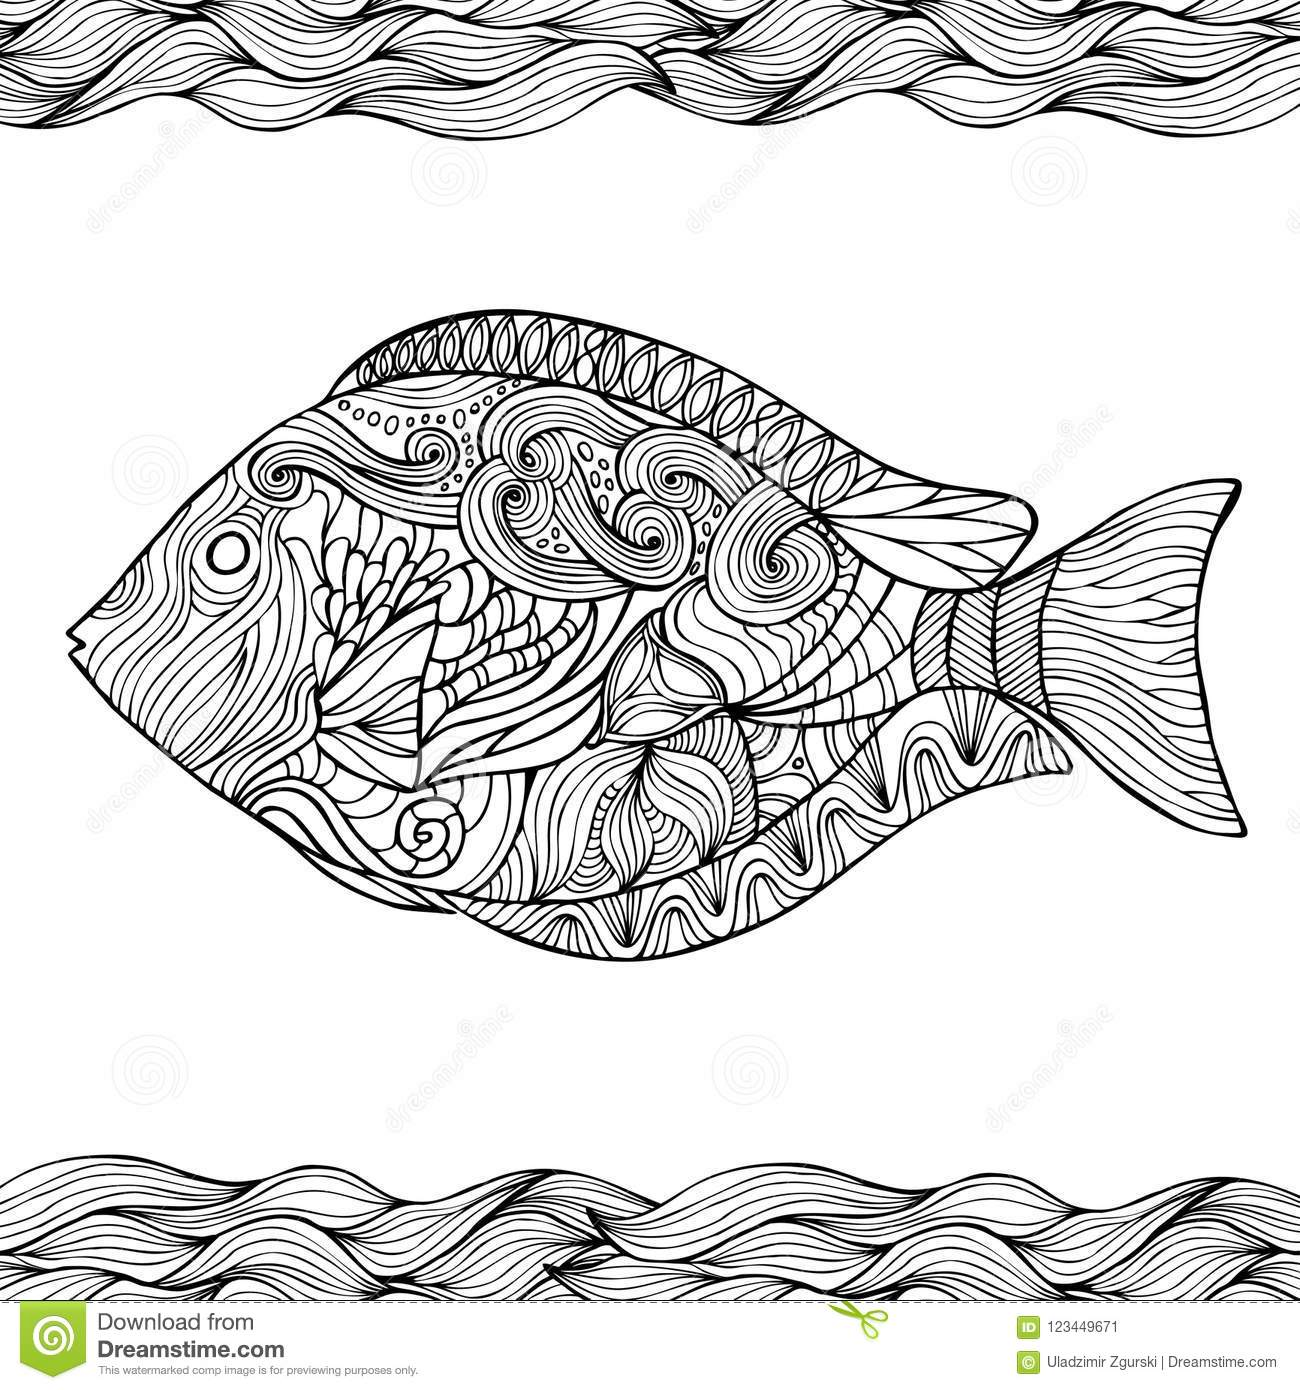 Hand Drawn Stylized Fish With Doodle, Zentangle, Floral